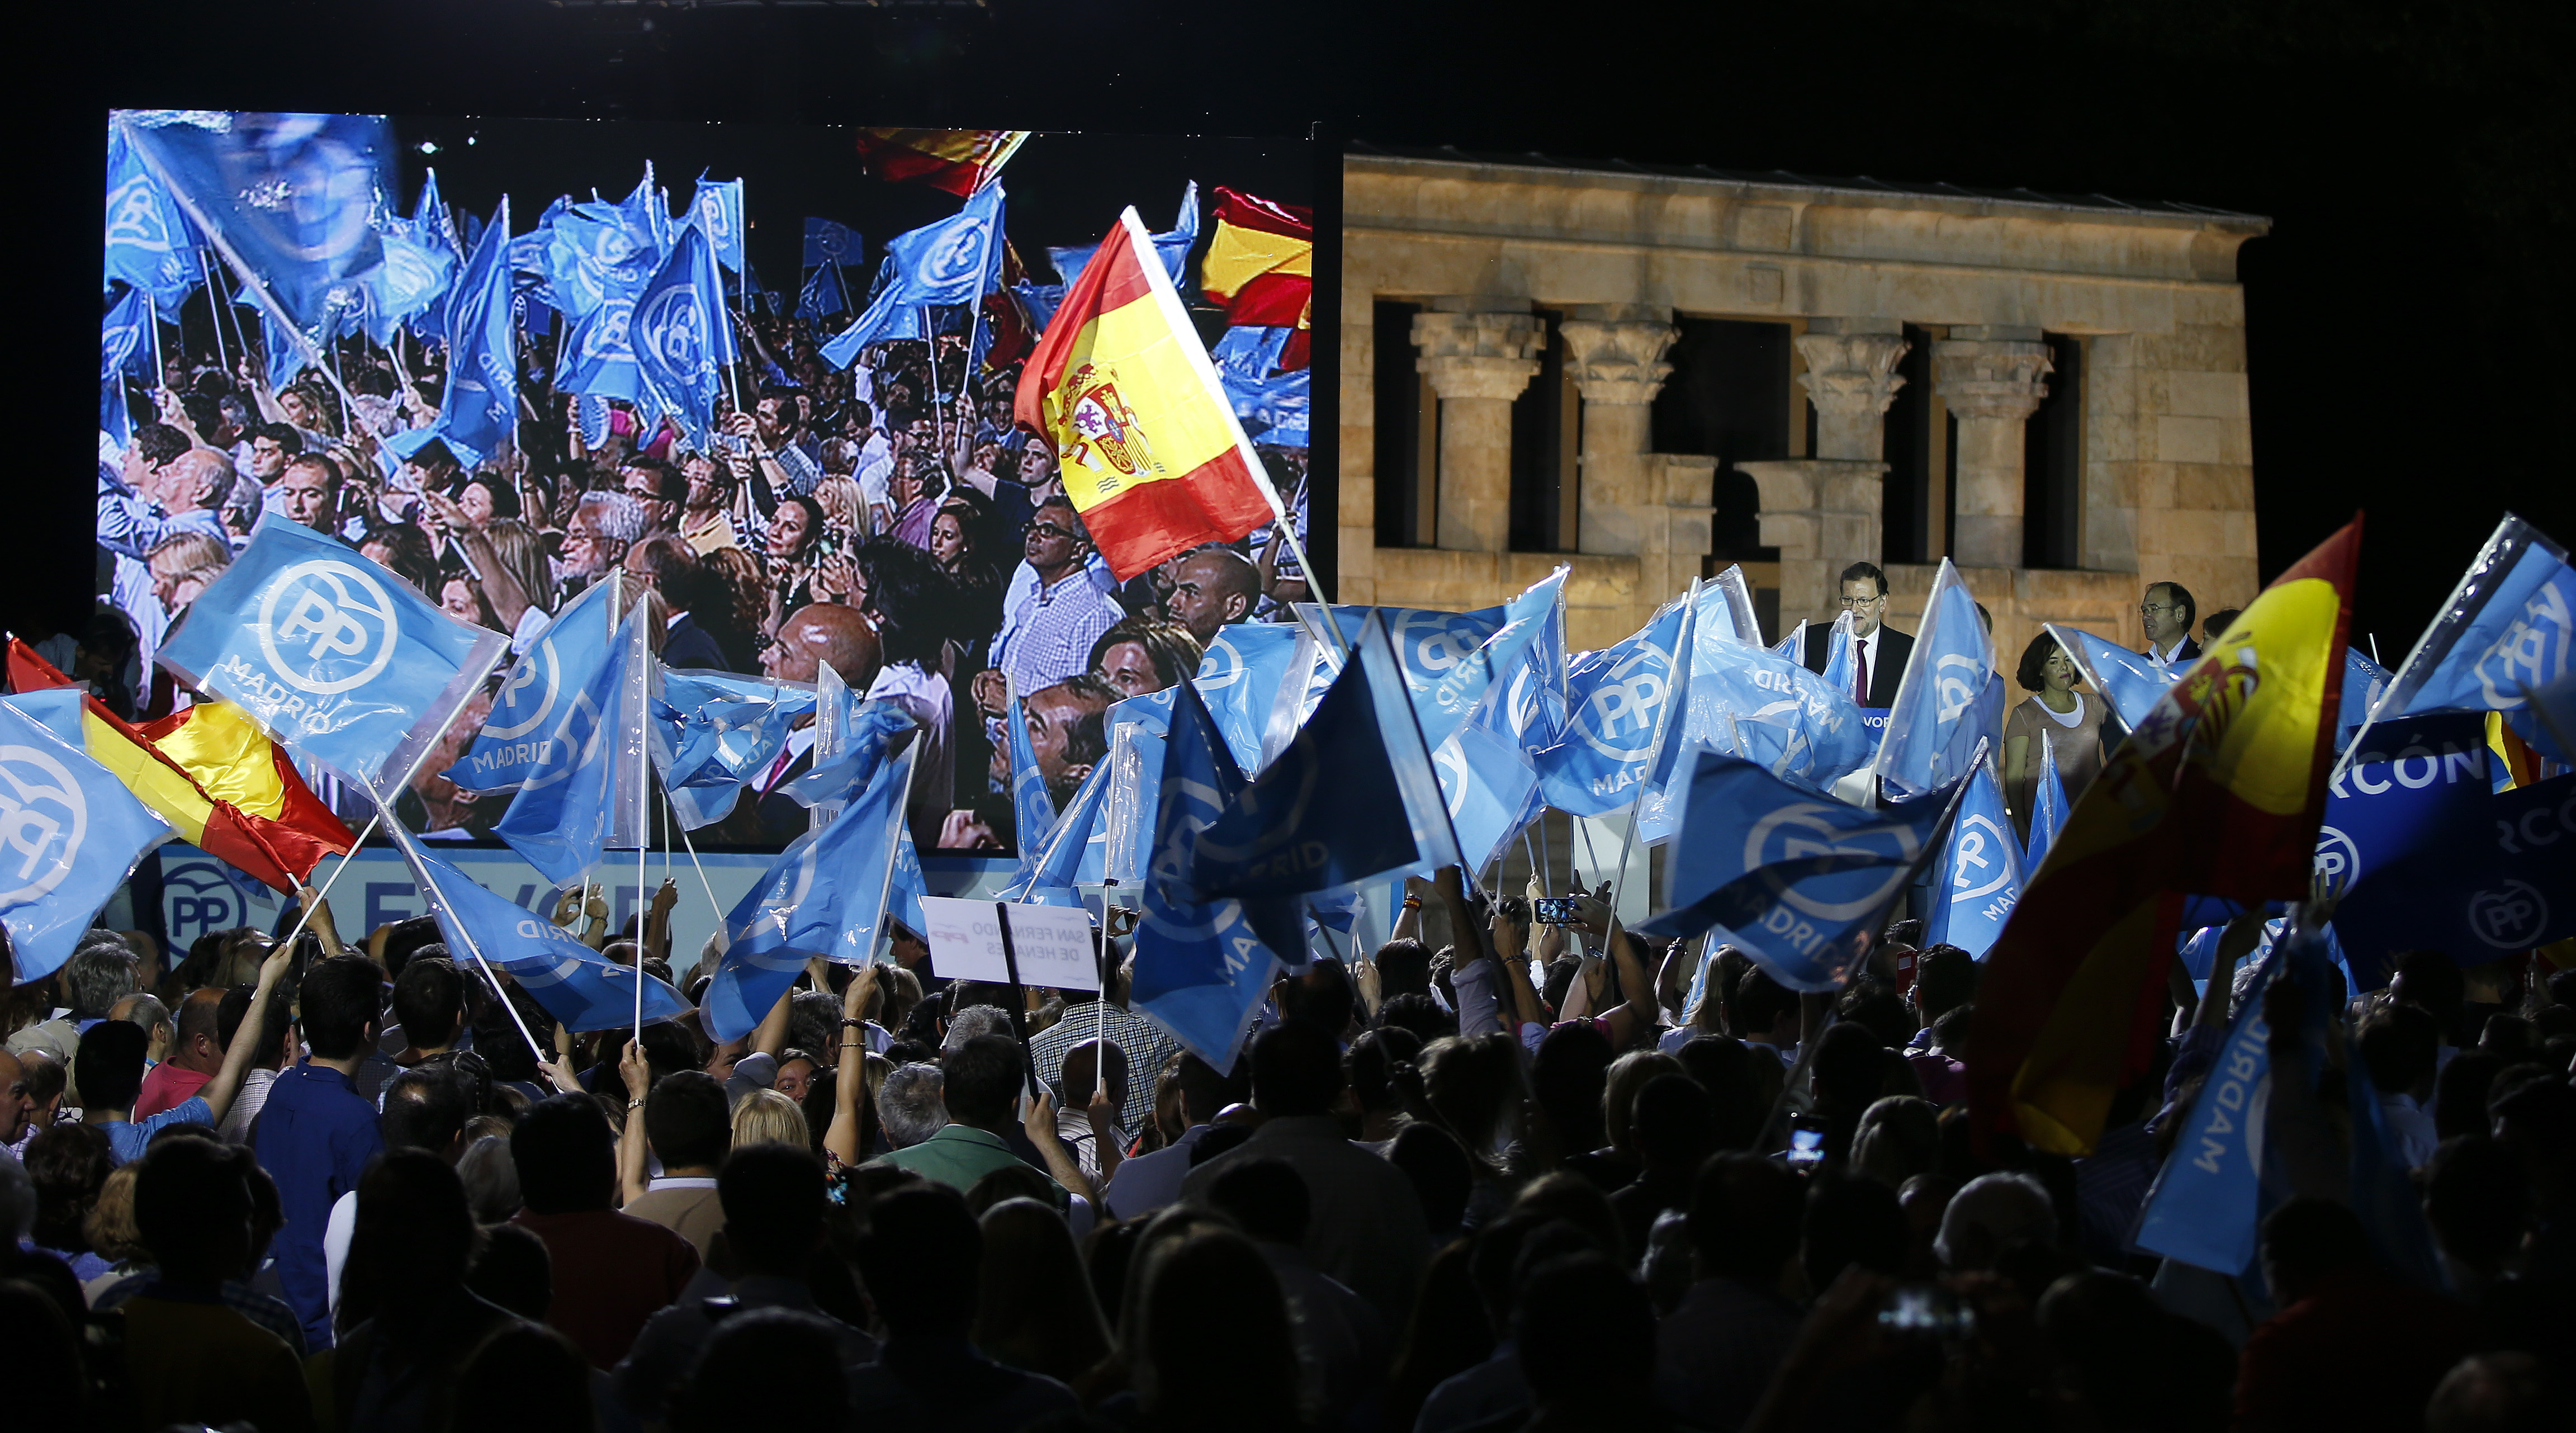 Supporters wave flags as People's Party (PP) leader Mariano Rajoy delivers a speech during a rally at the start of the official campaign period for Spain's general election in Madrid